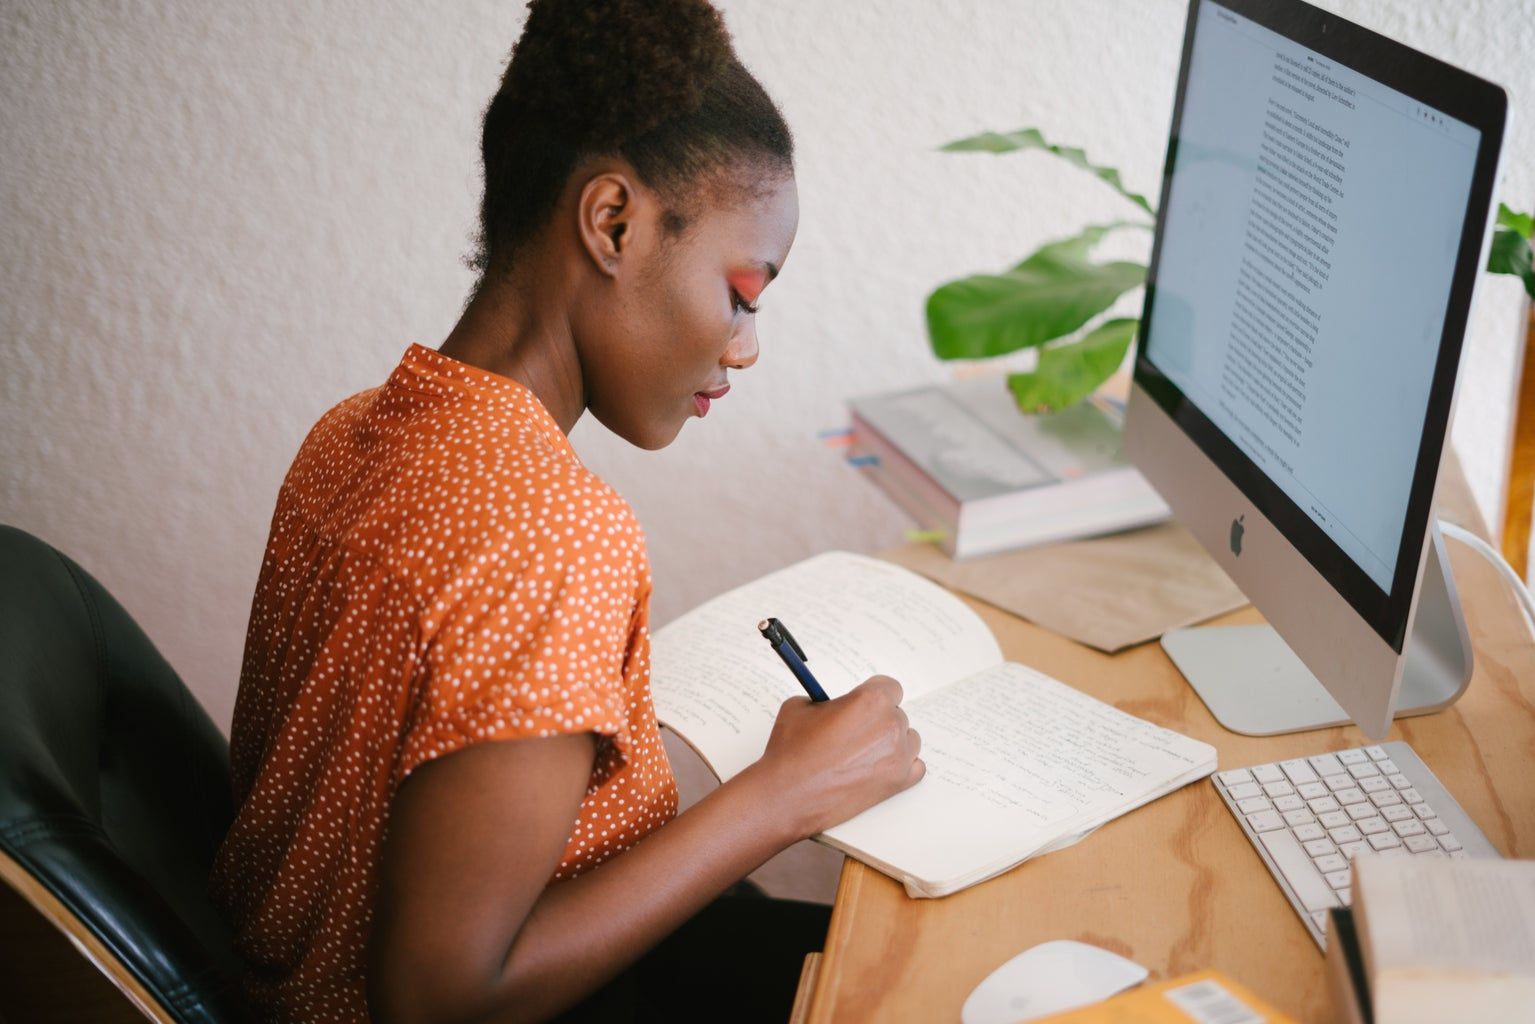 Black girl at computer desk writing in journal write natural work corporate african